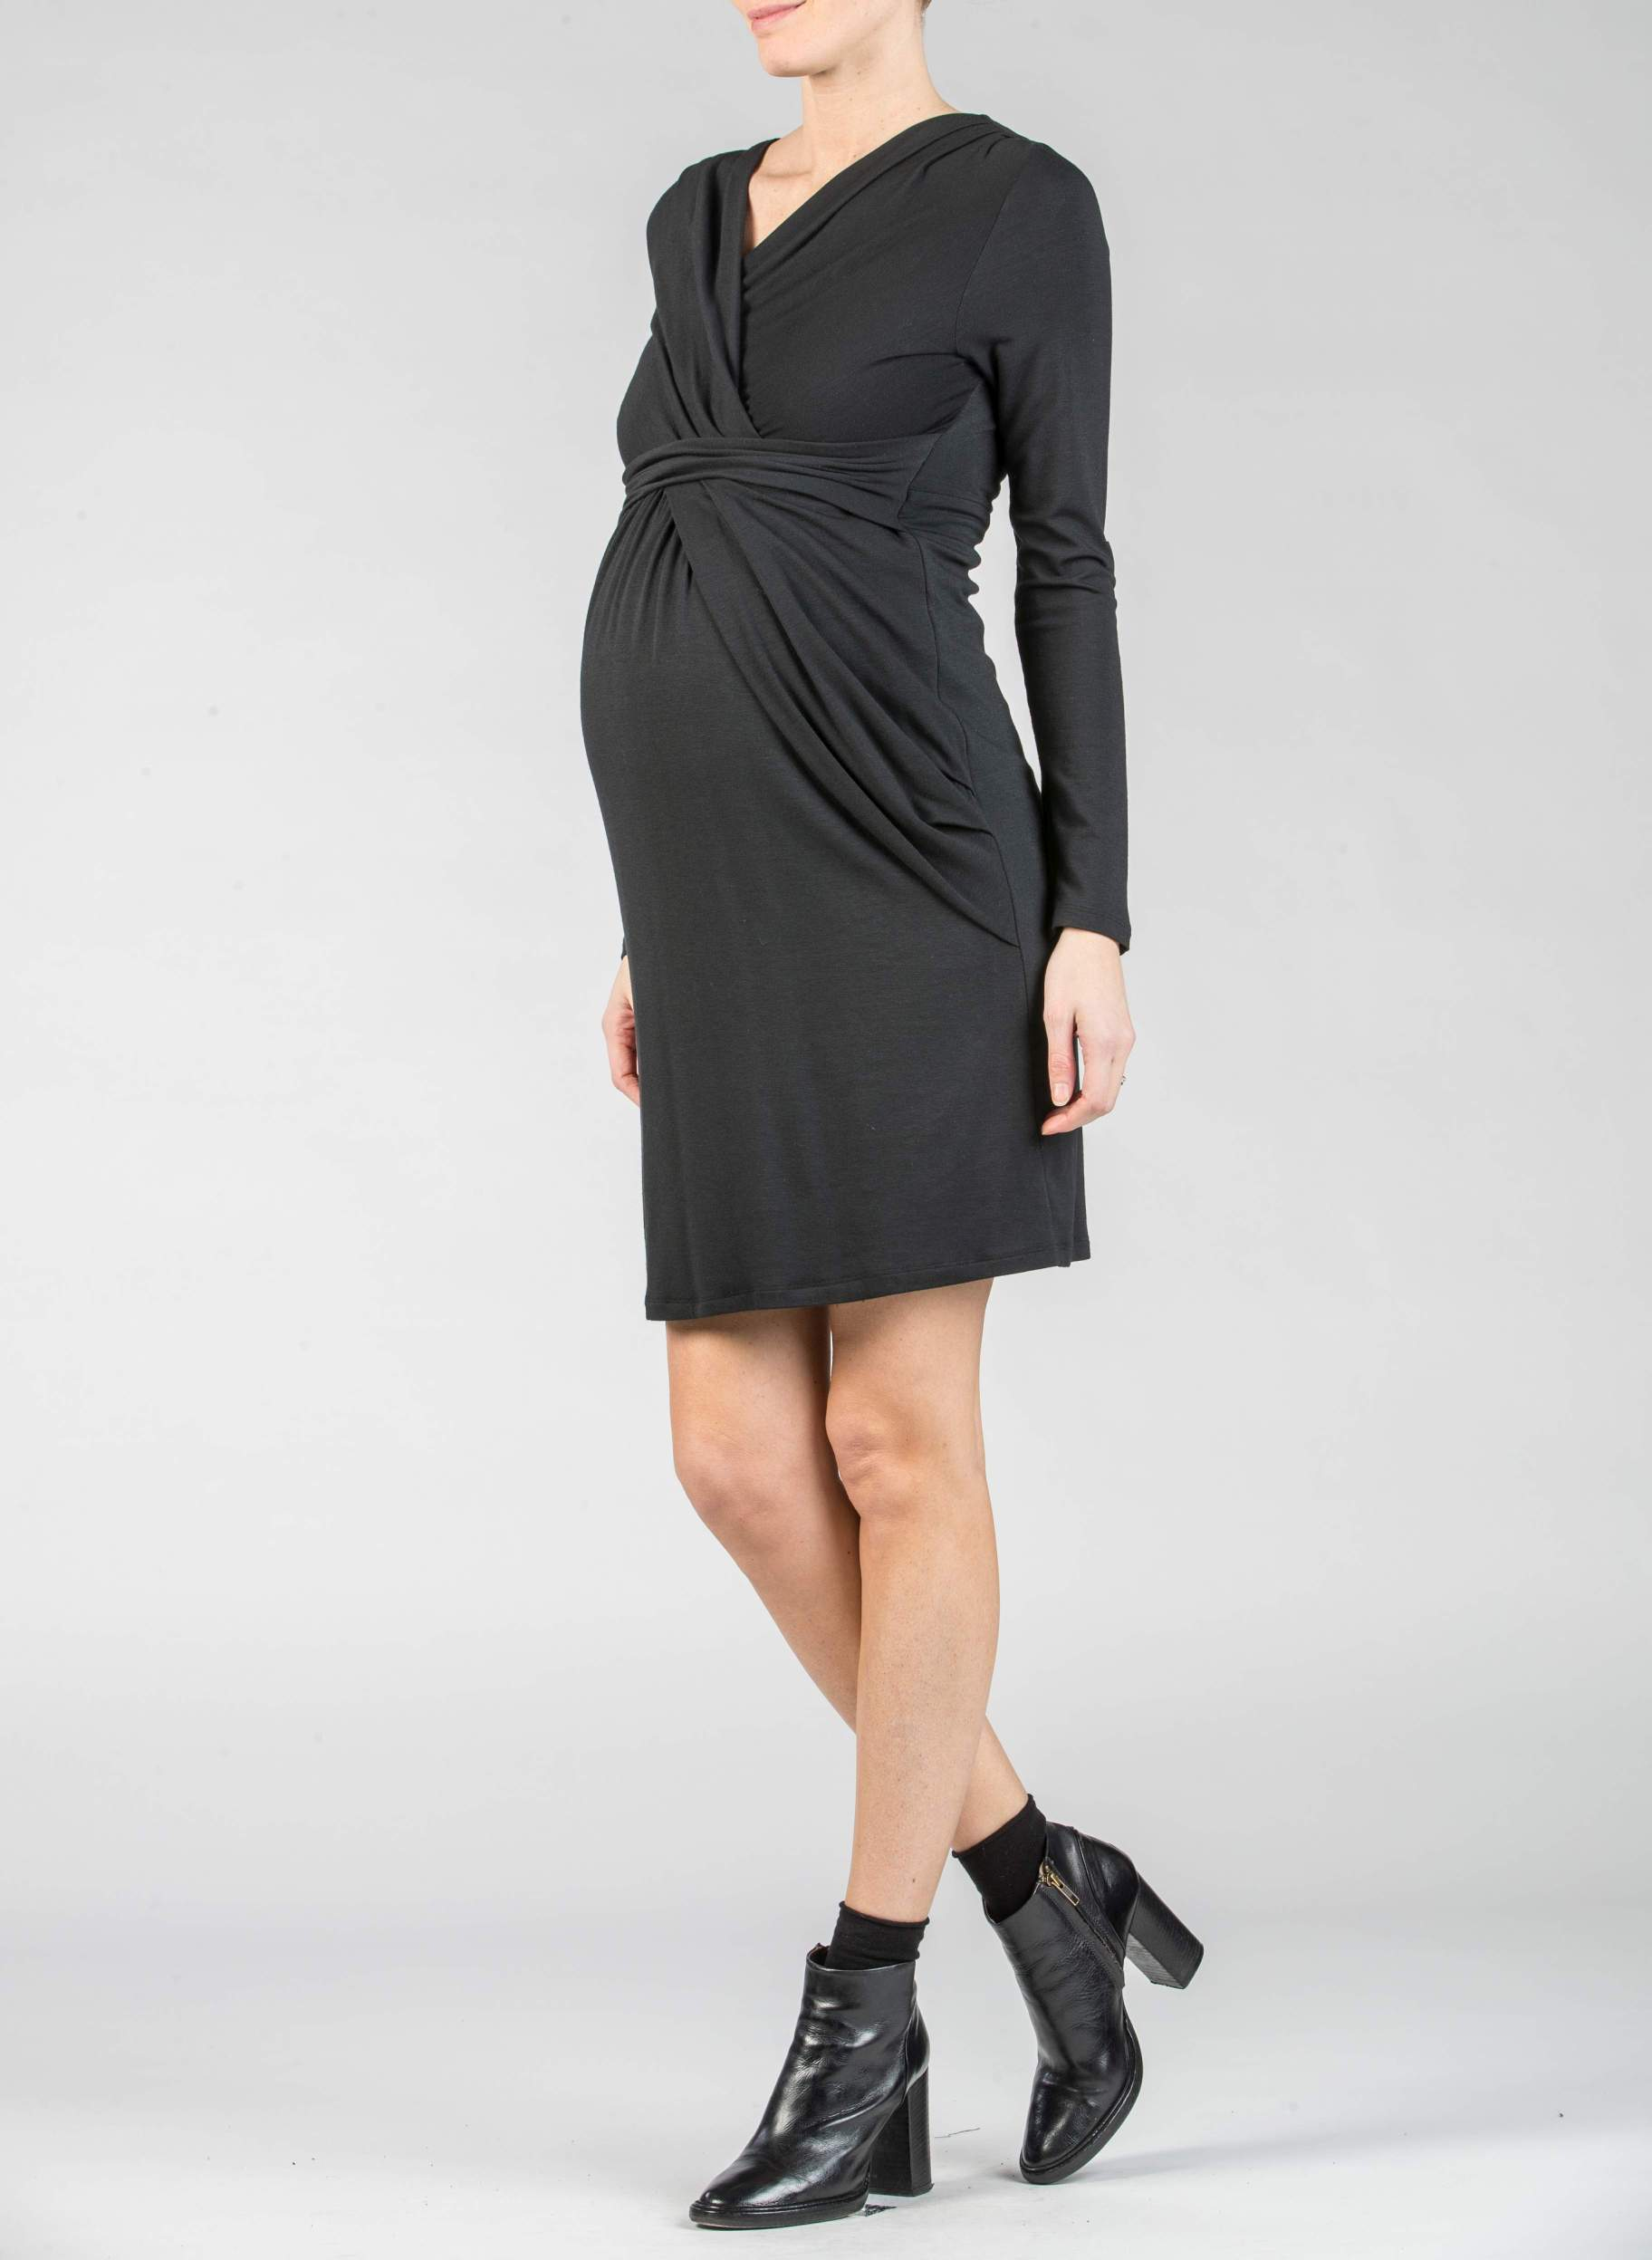 Bella wool jersey maternity dress with drape front and zip back